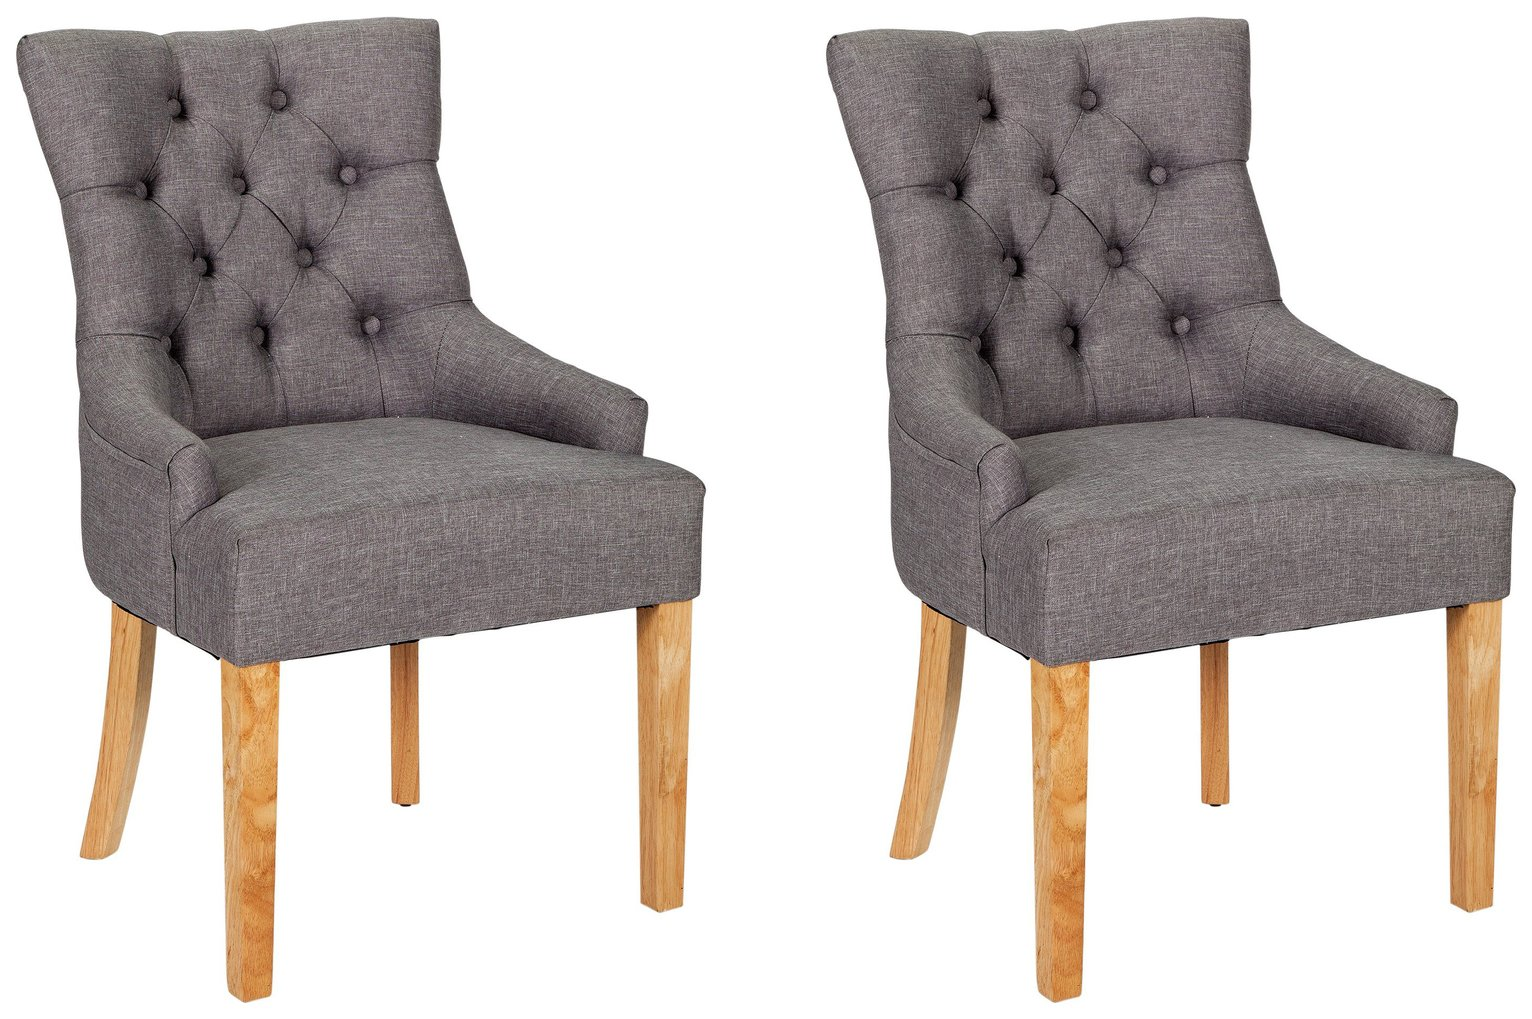 Buy Argos Home Pair of Cherwell Dining Chairs - Charcoal | Dining